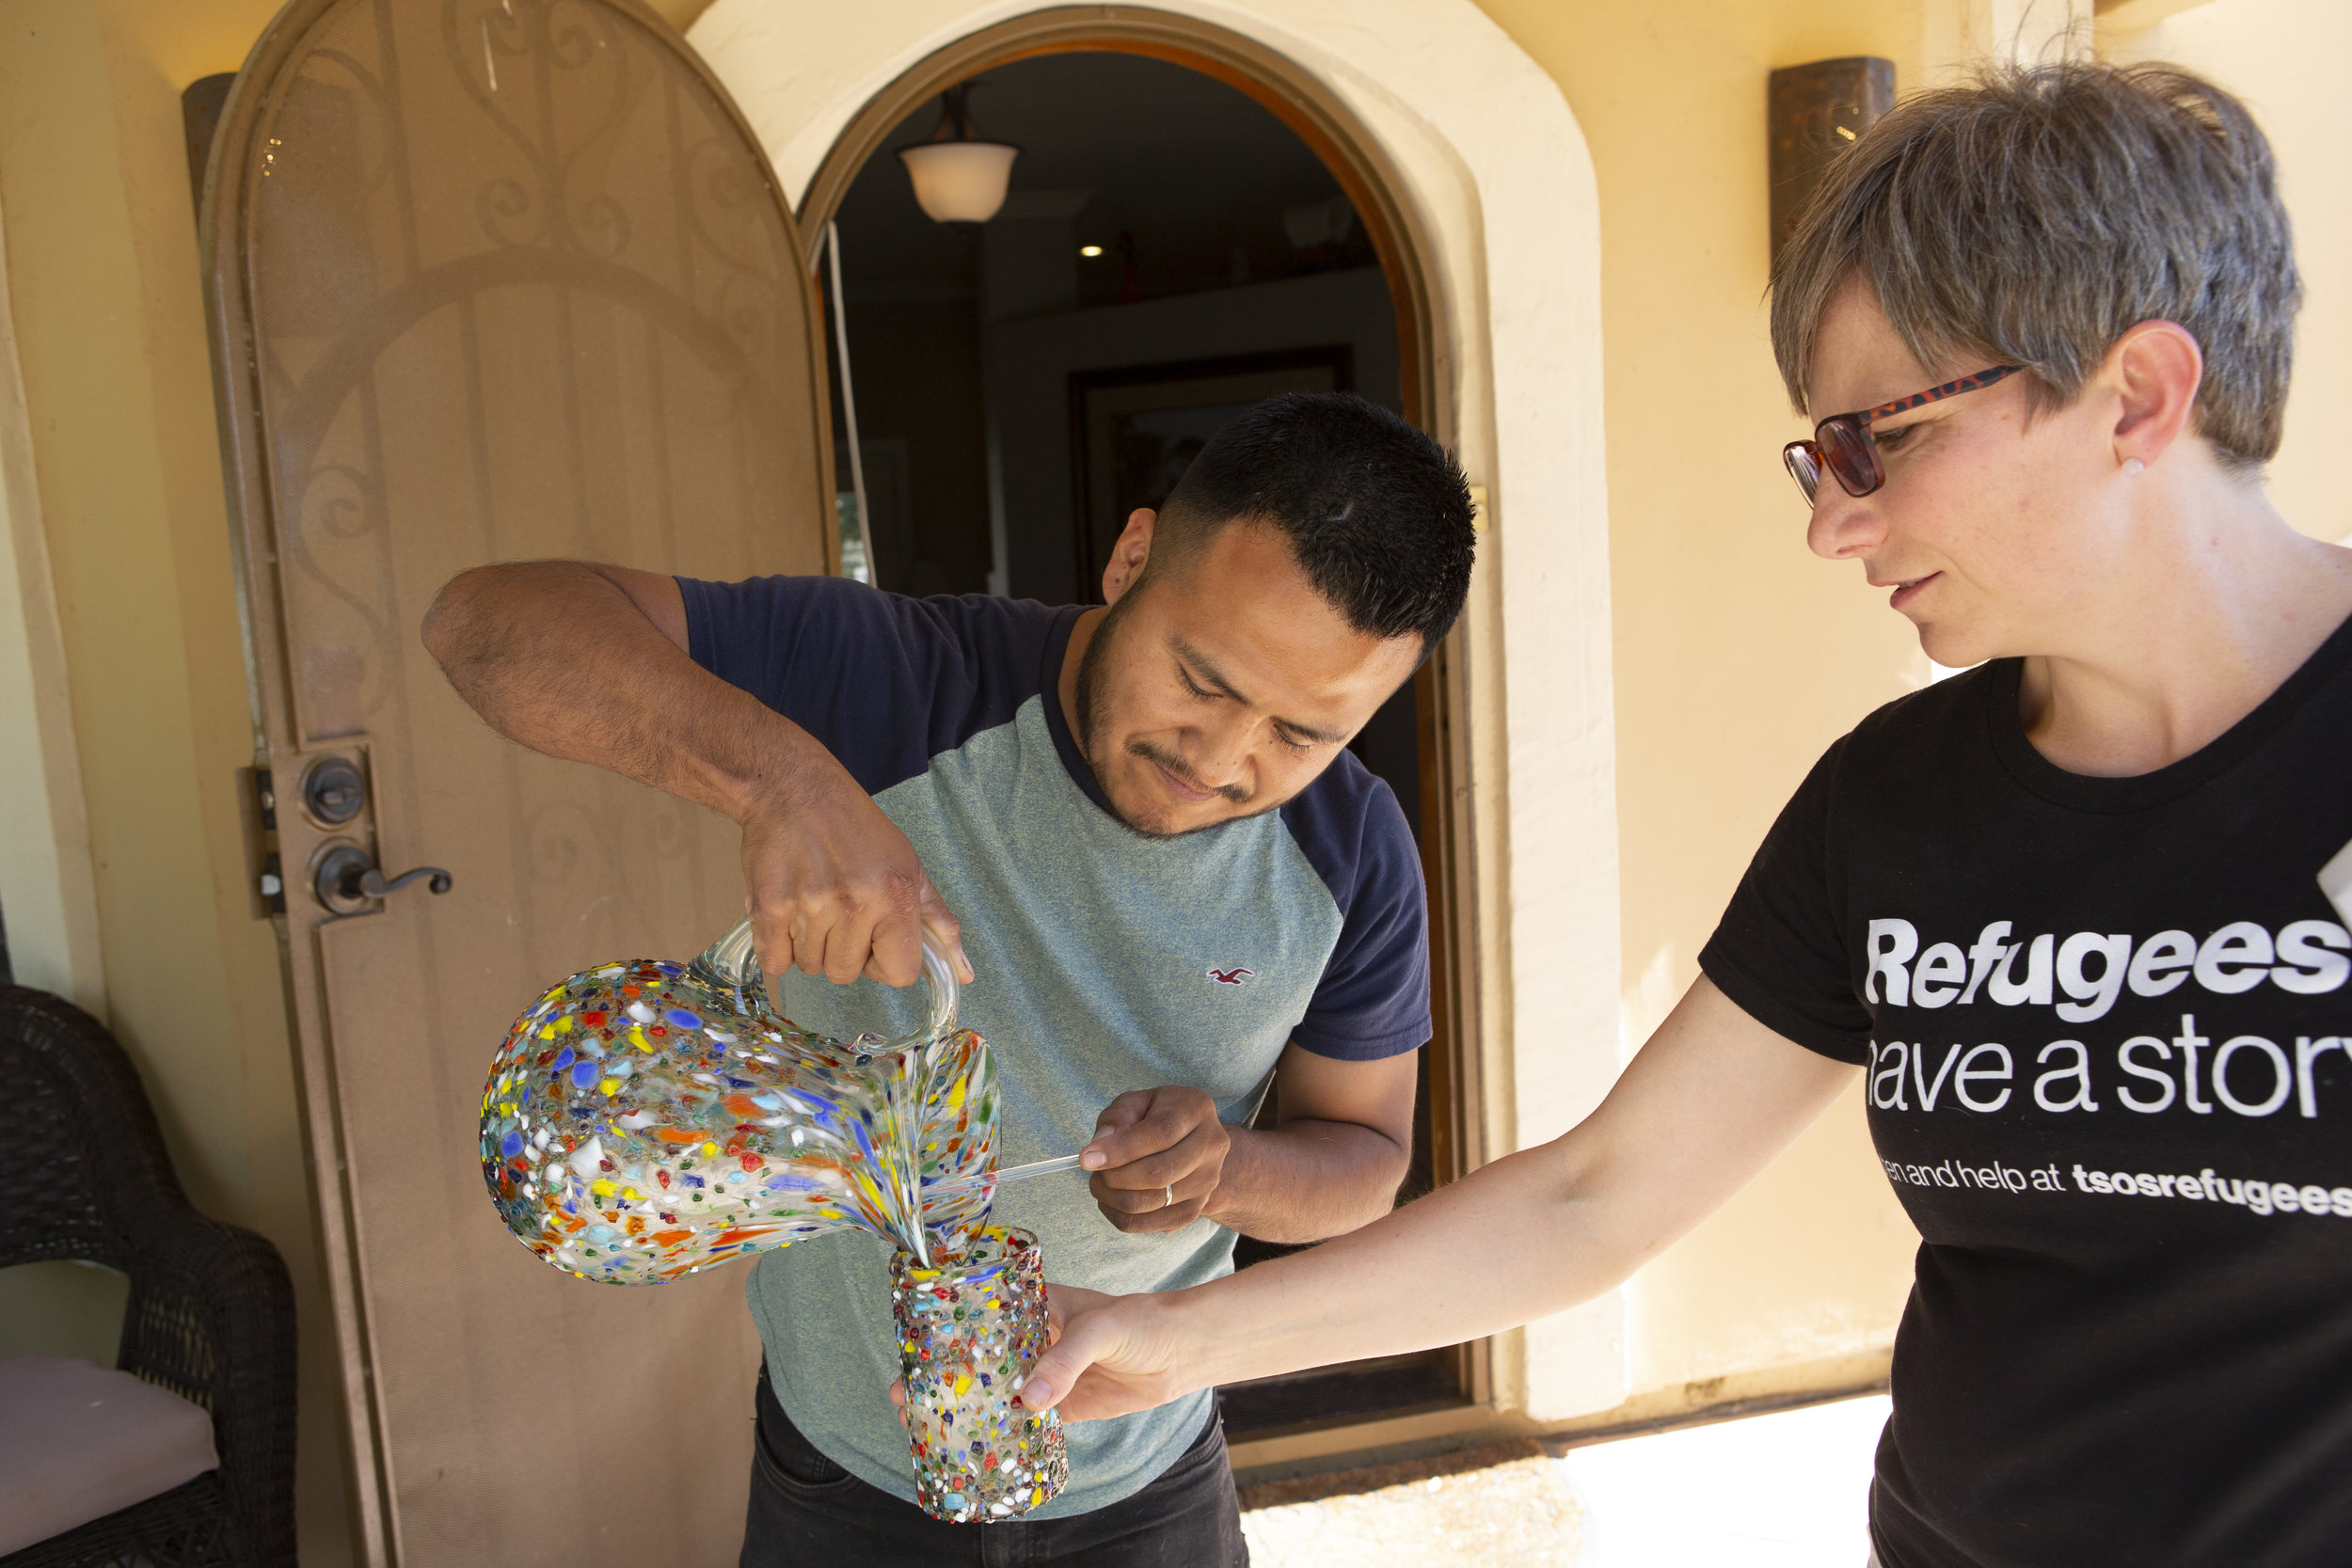 Israel pours lemonade for Megan Carson, from Their Story Is Our Story, when she interviewed him at his Arizona home.